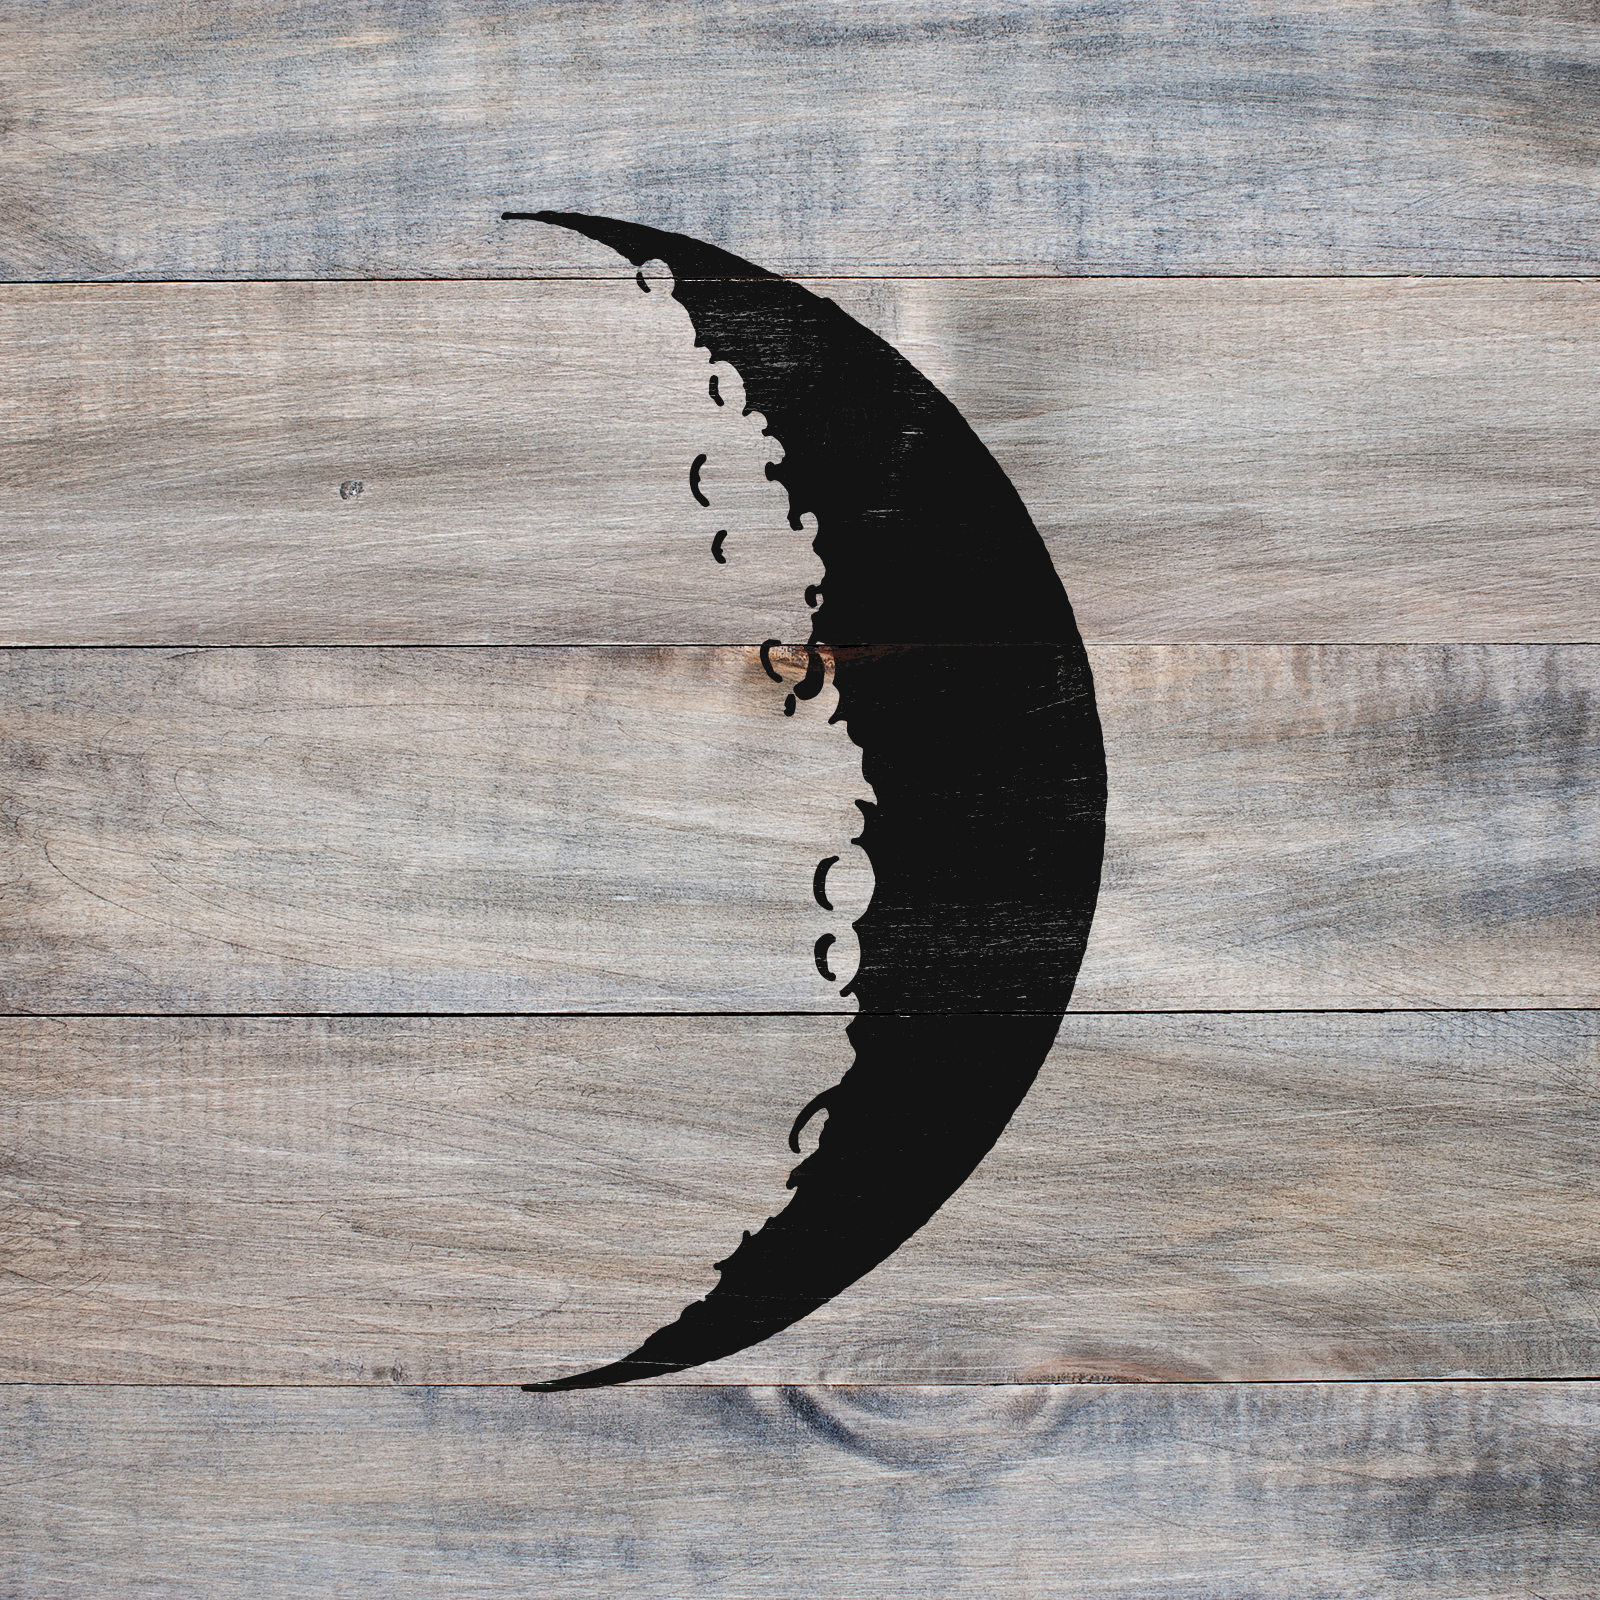 Crescent Moon Stencil - Reusable Stencils of a Crescent Moon in Multiple Sizes